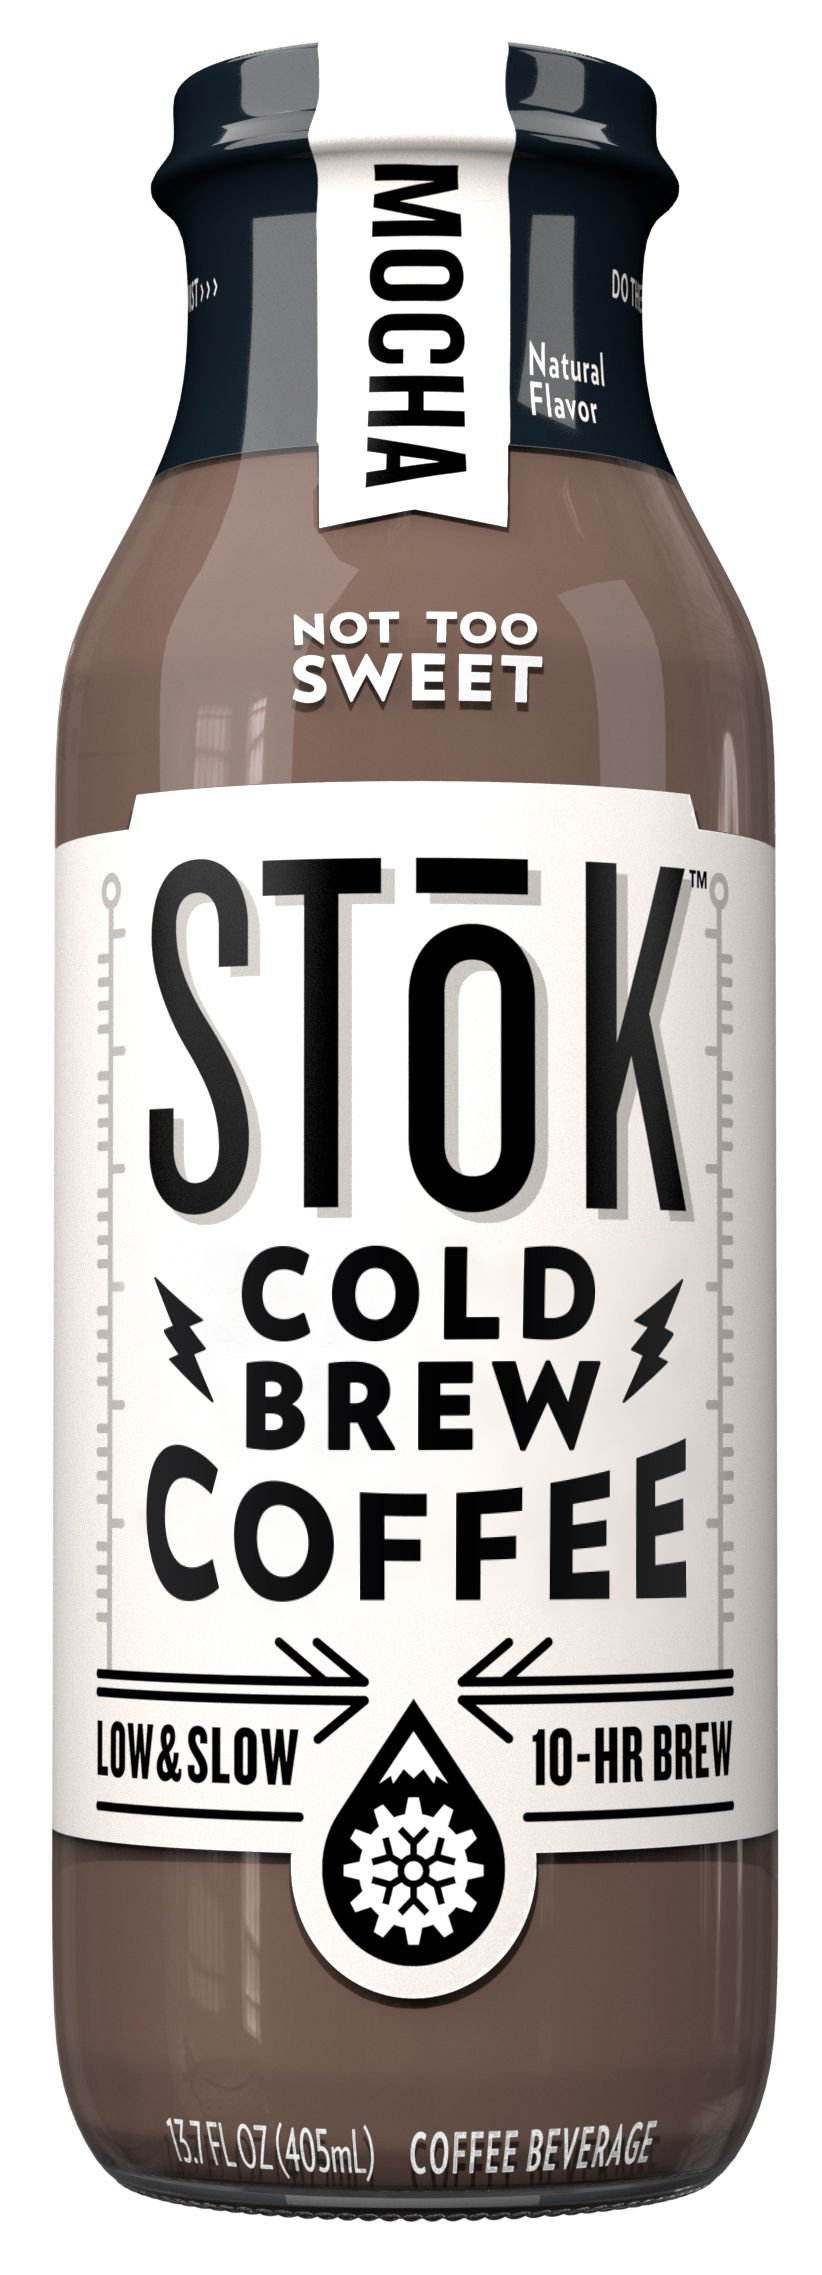 SToK Cold-Brew Iced Coffee, Mocha, 13.7 Ounce Bottle 10-Hour Brew Cold-Brew Arabica-Based Coffee, Chocolate-Flavored Ready-to-Drink Mocha Coffee, Pour over Ice or Drink Hot by SToK